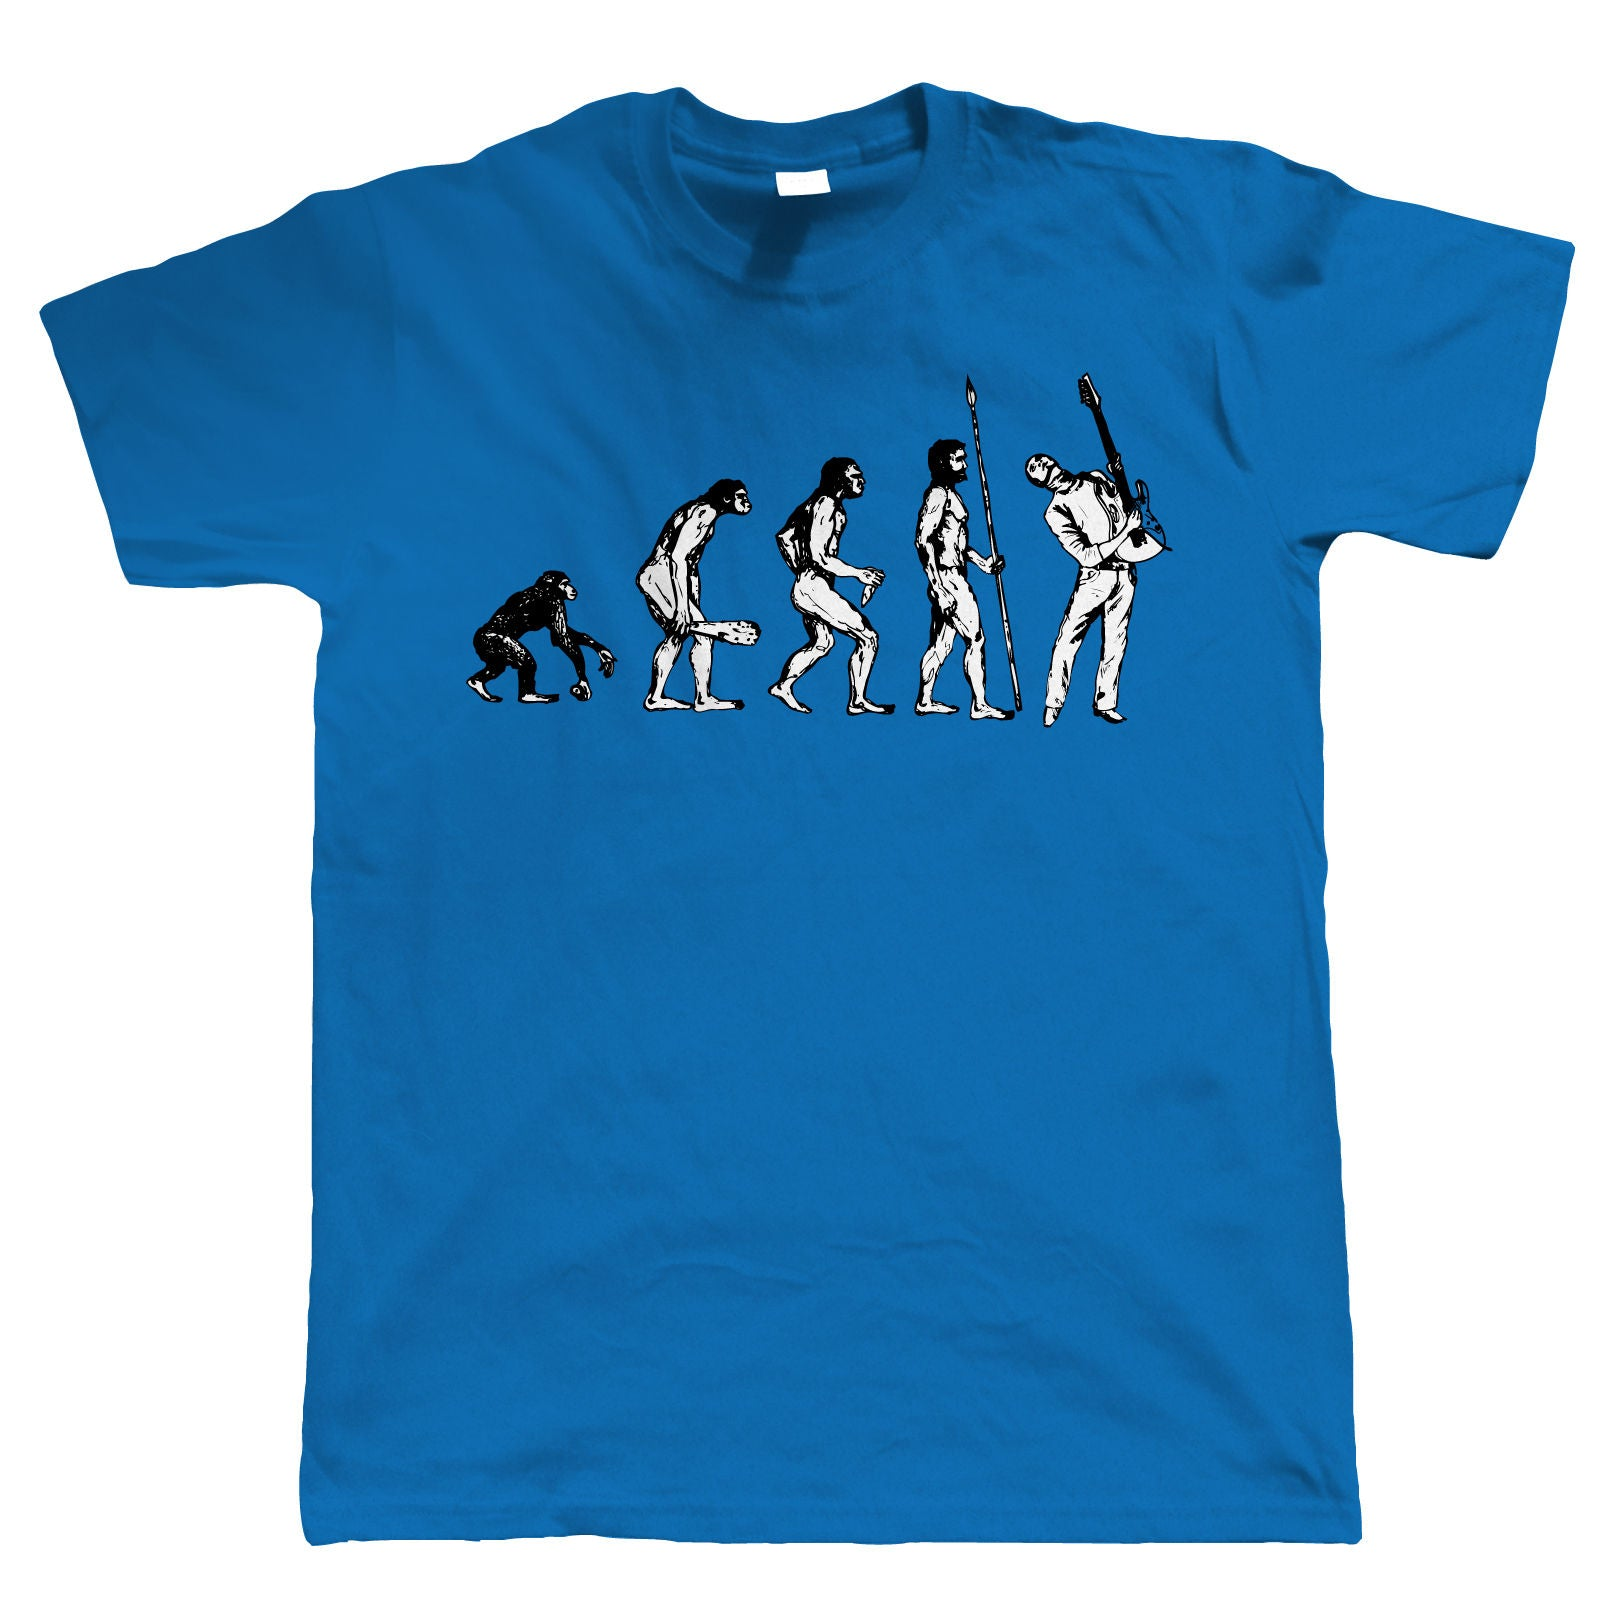 Evolution of Guitarist, Mens Funny Guitar Tshirt